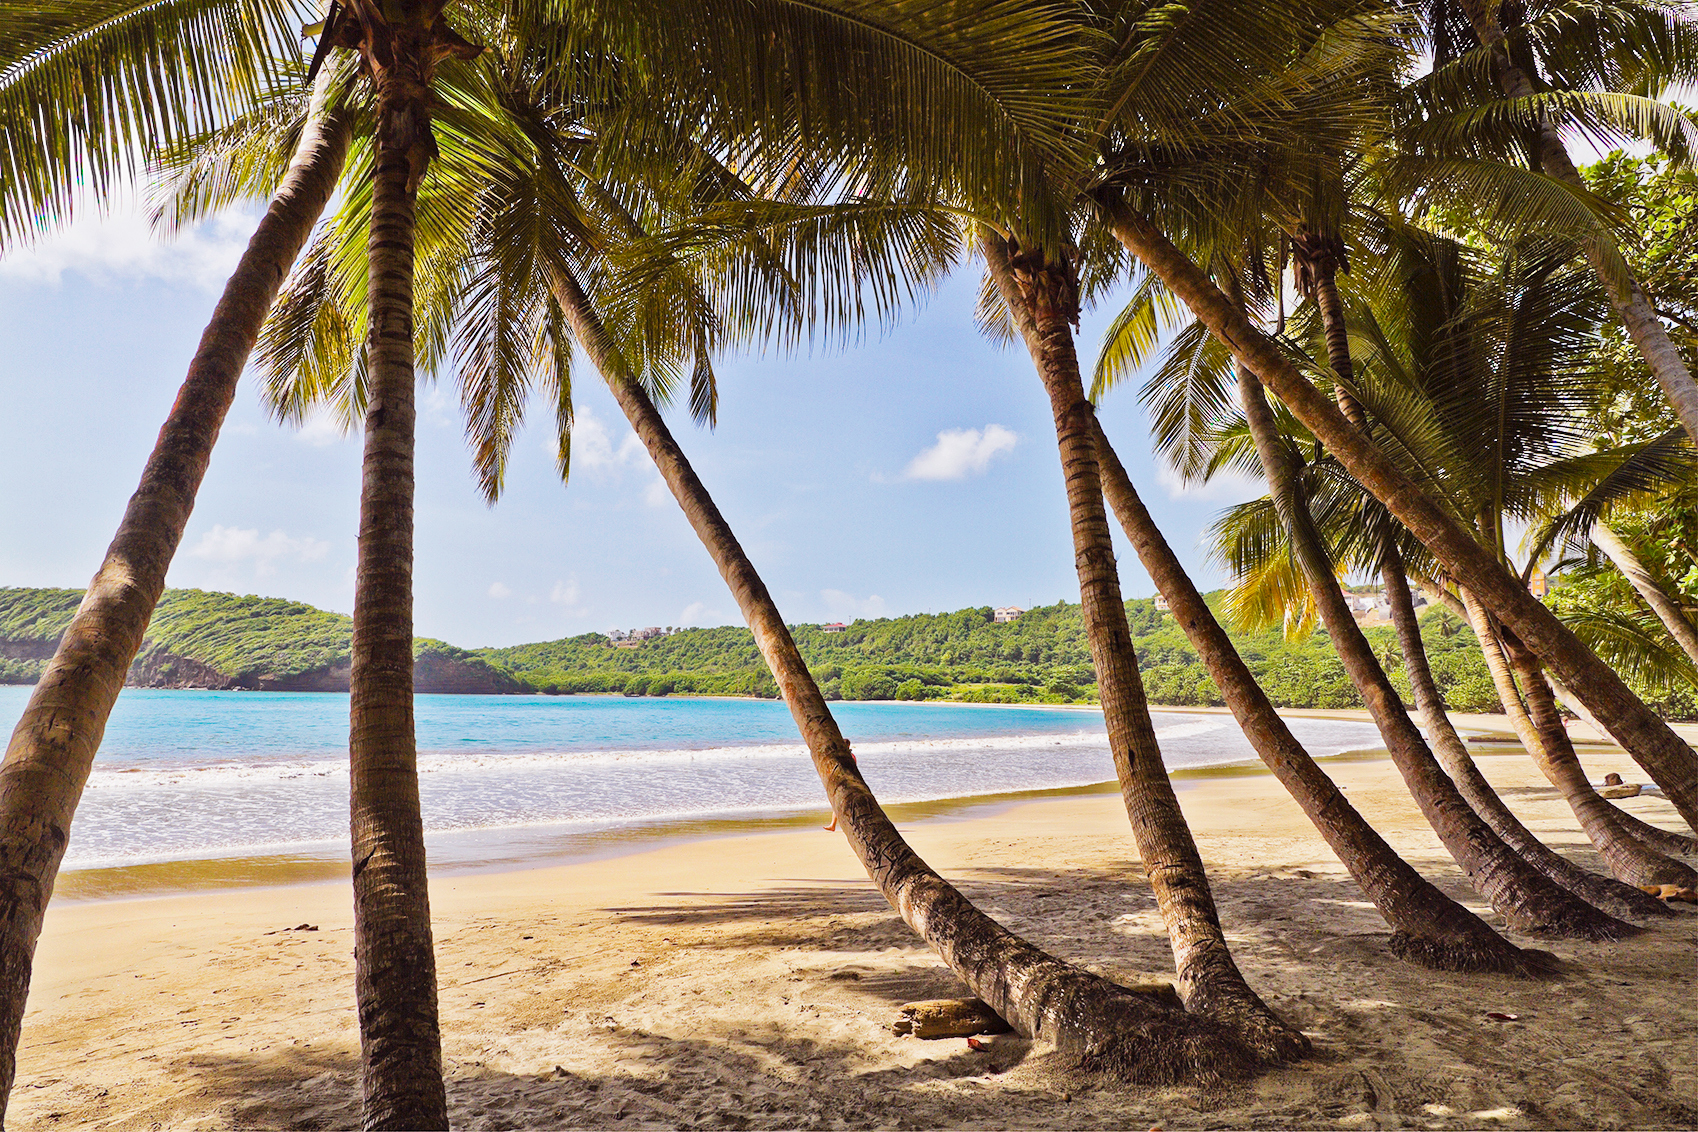 The Post Beautiful Beaches In The Caribbean Appeared First On